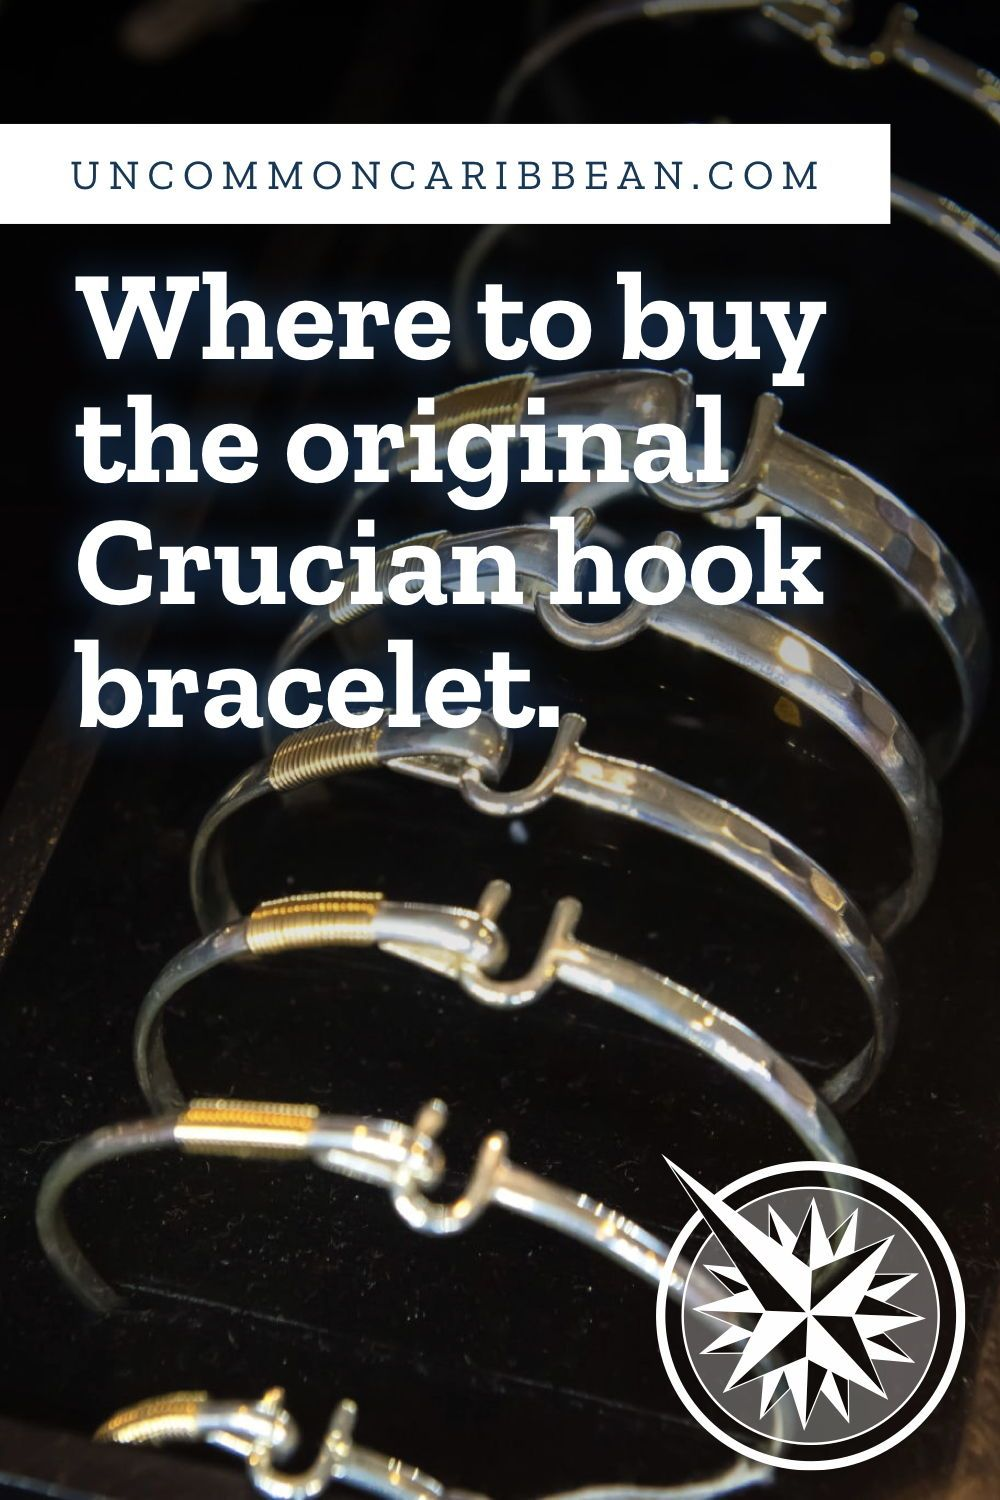 Find Out Where To Buy The Original Crucian Hook Bracelet On St Crois Usvi Caribbean Travel Stcroix Usvi Hook Bracelet St Croix Bracelets With Meaning